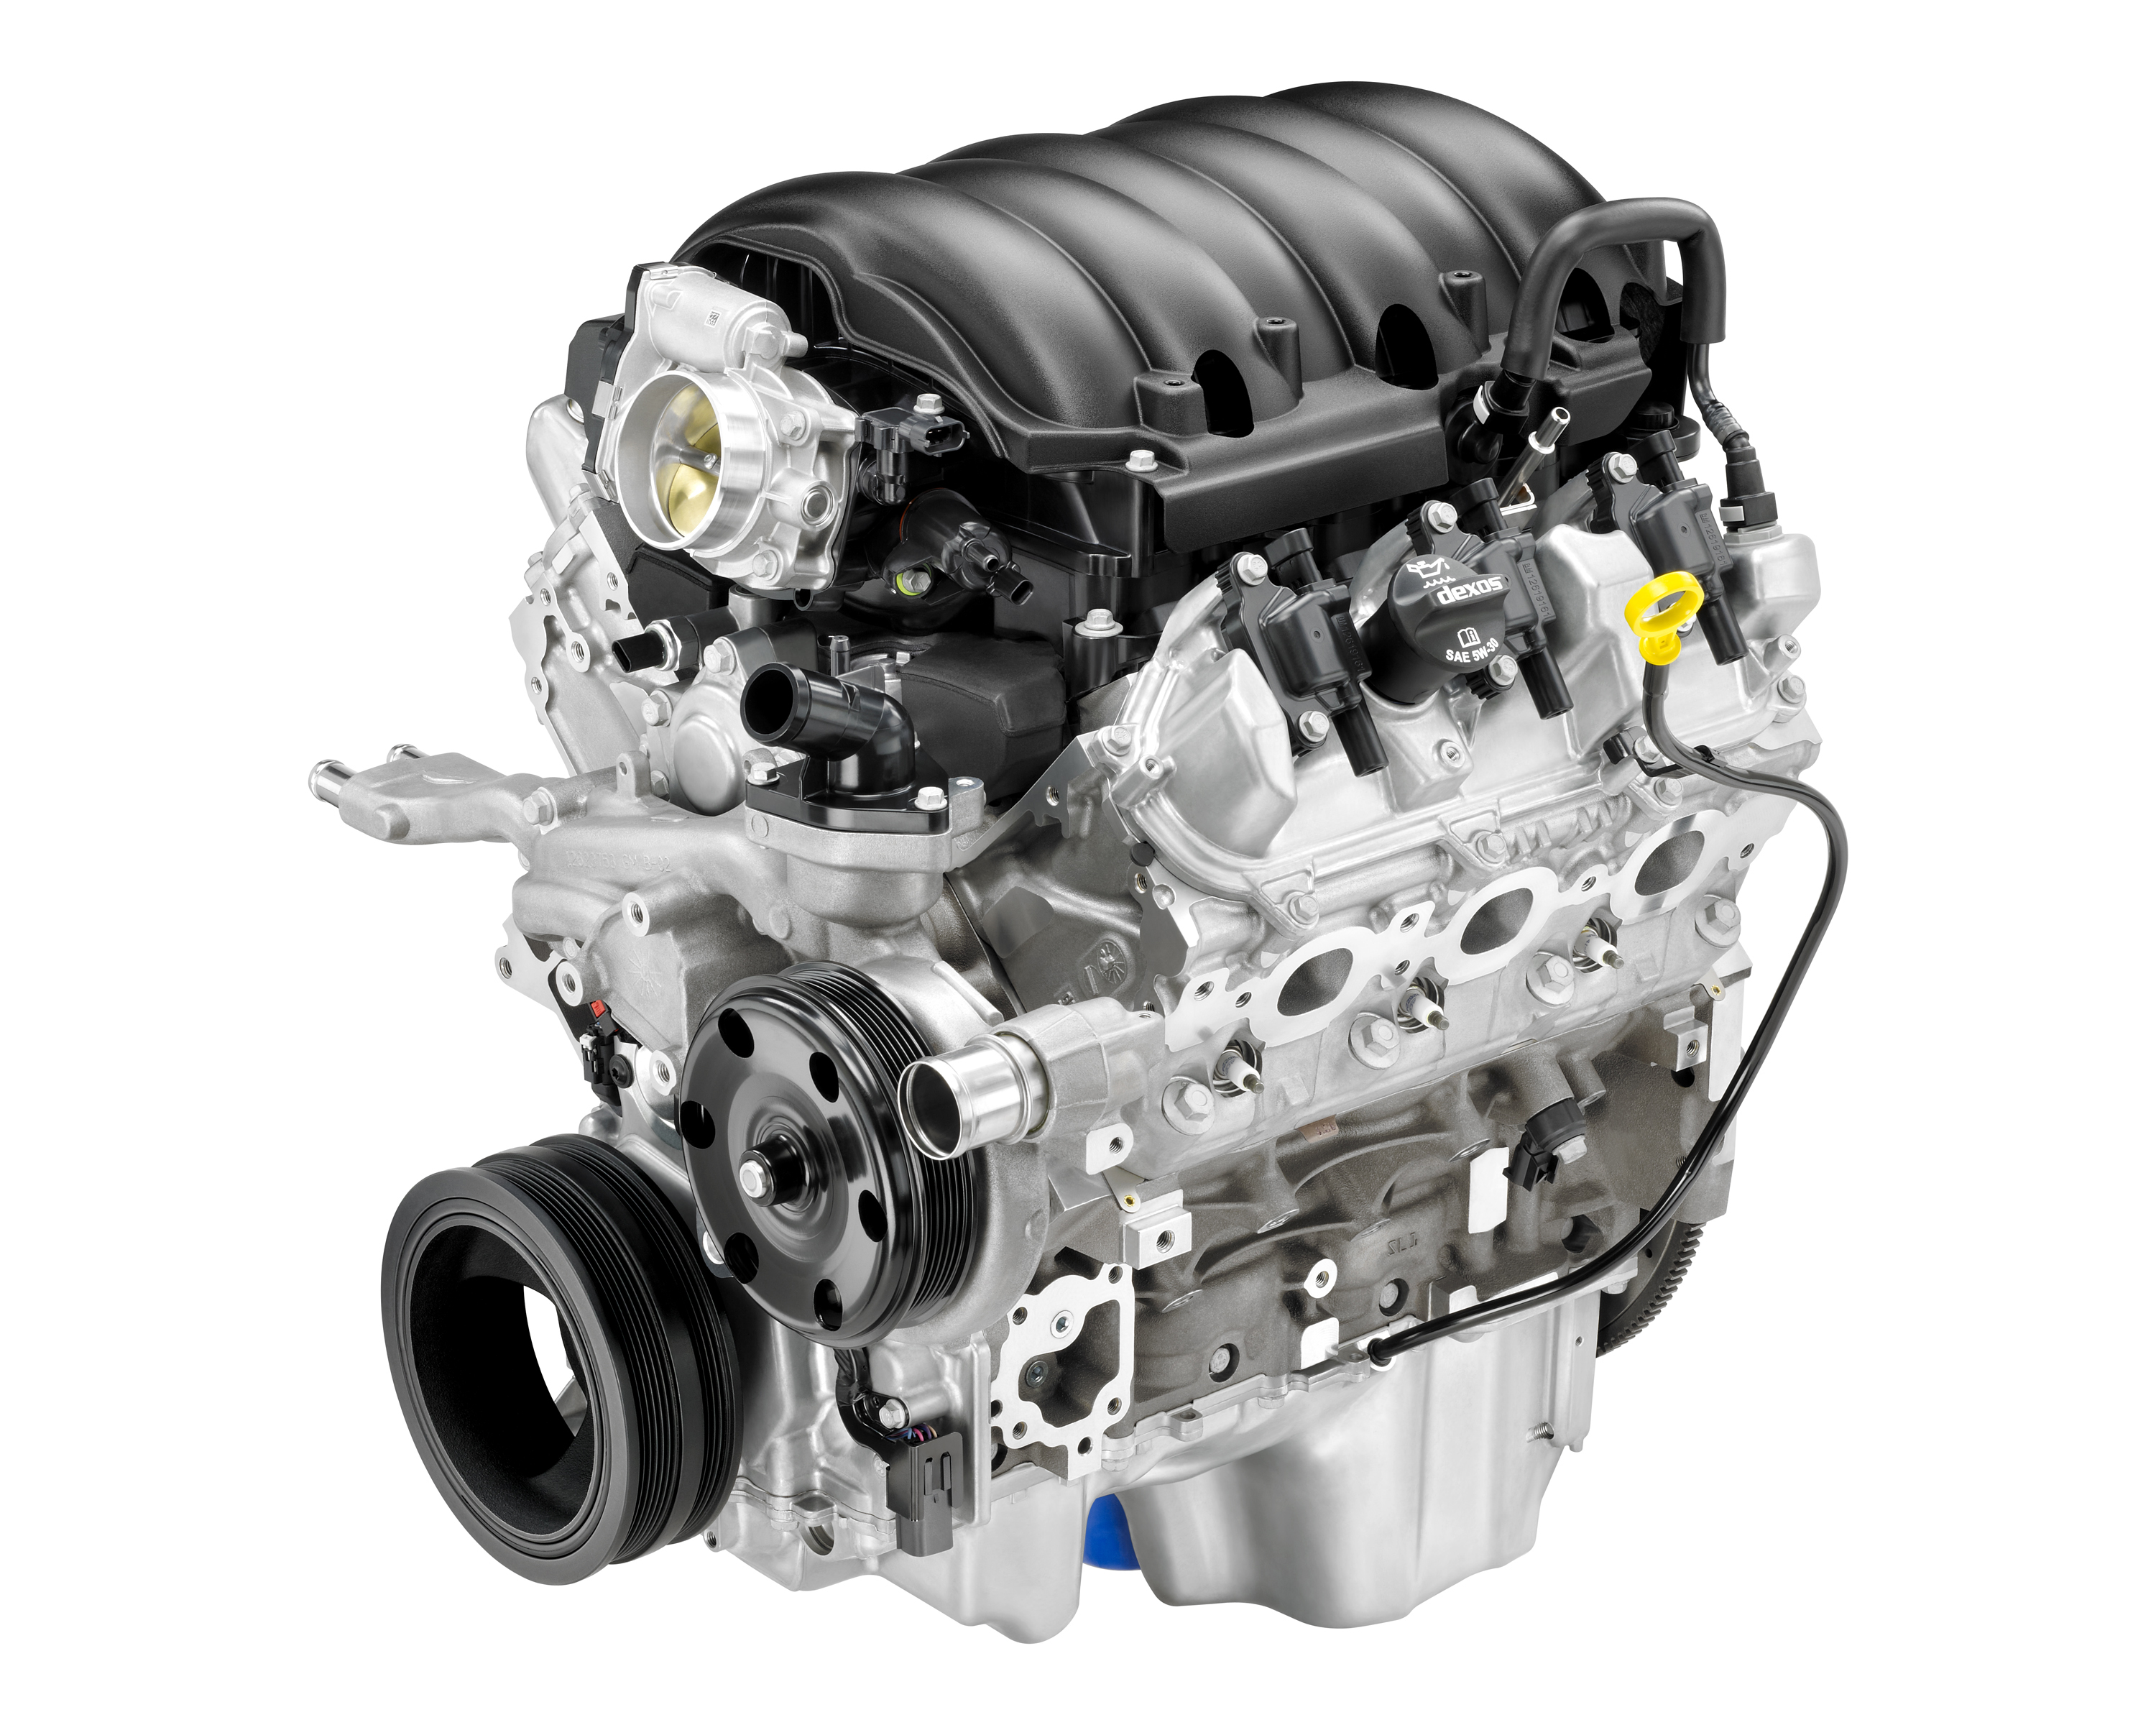 Gm marine gen v 4 3l v6 small block engine promises better for General motors marine engines